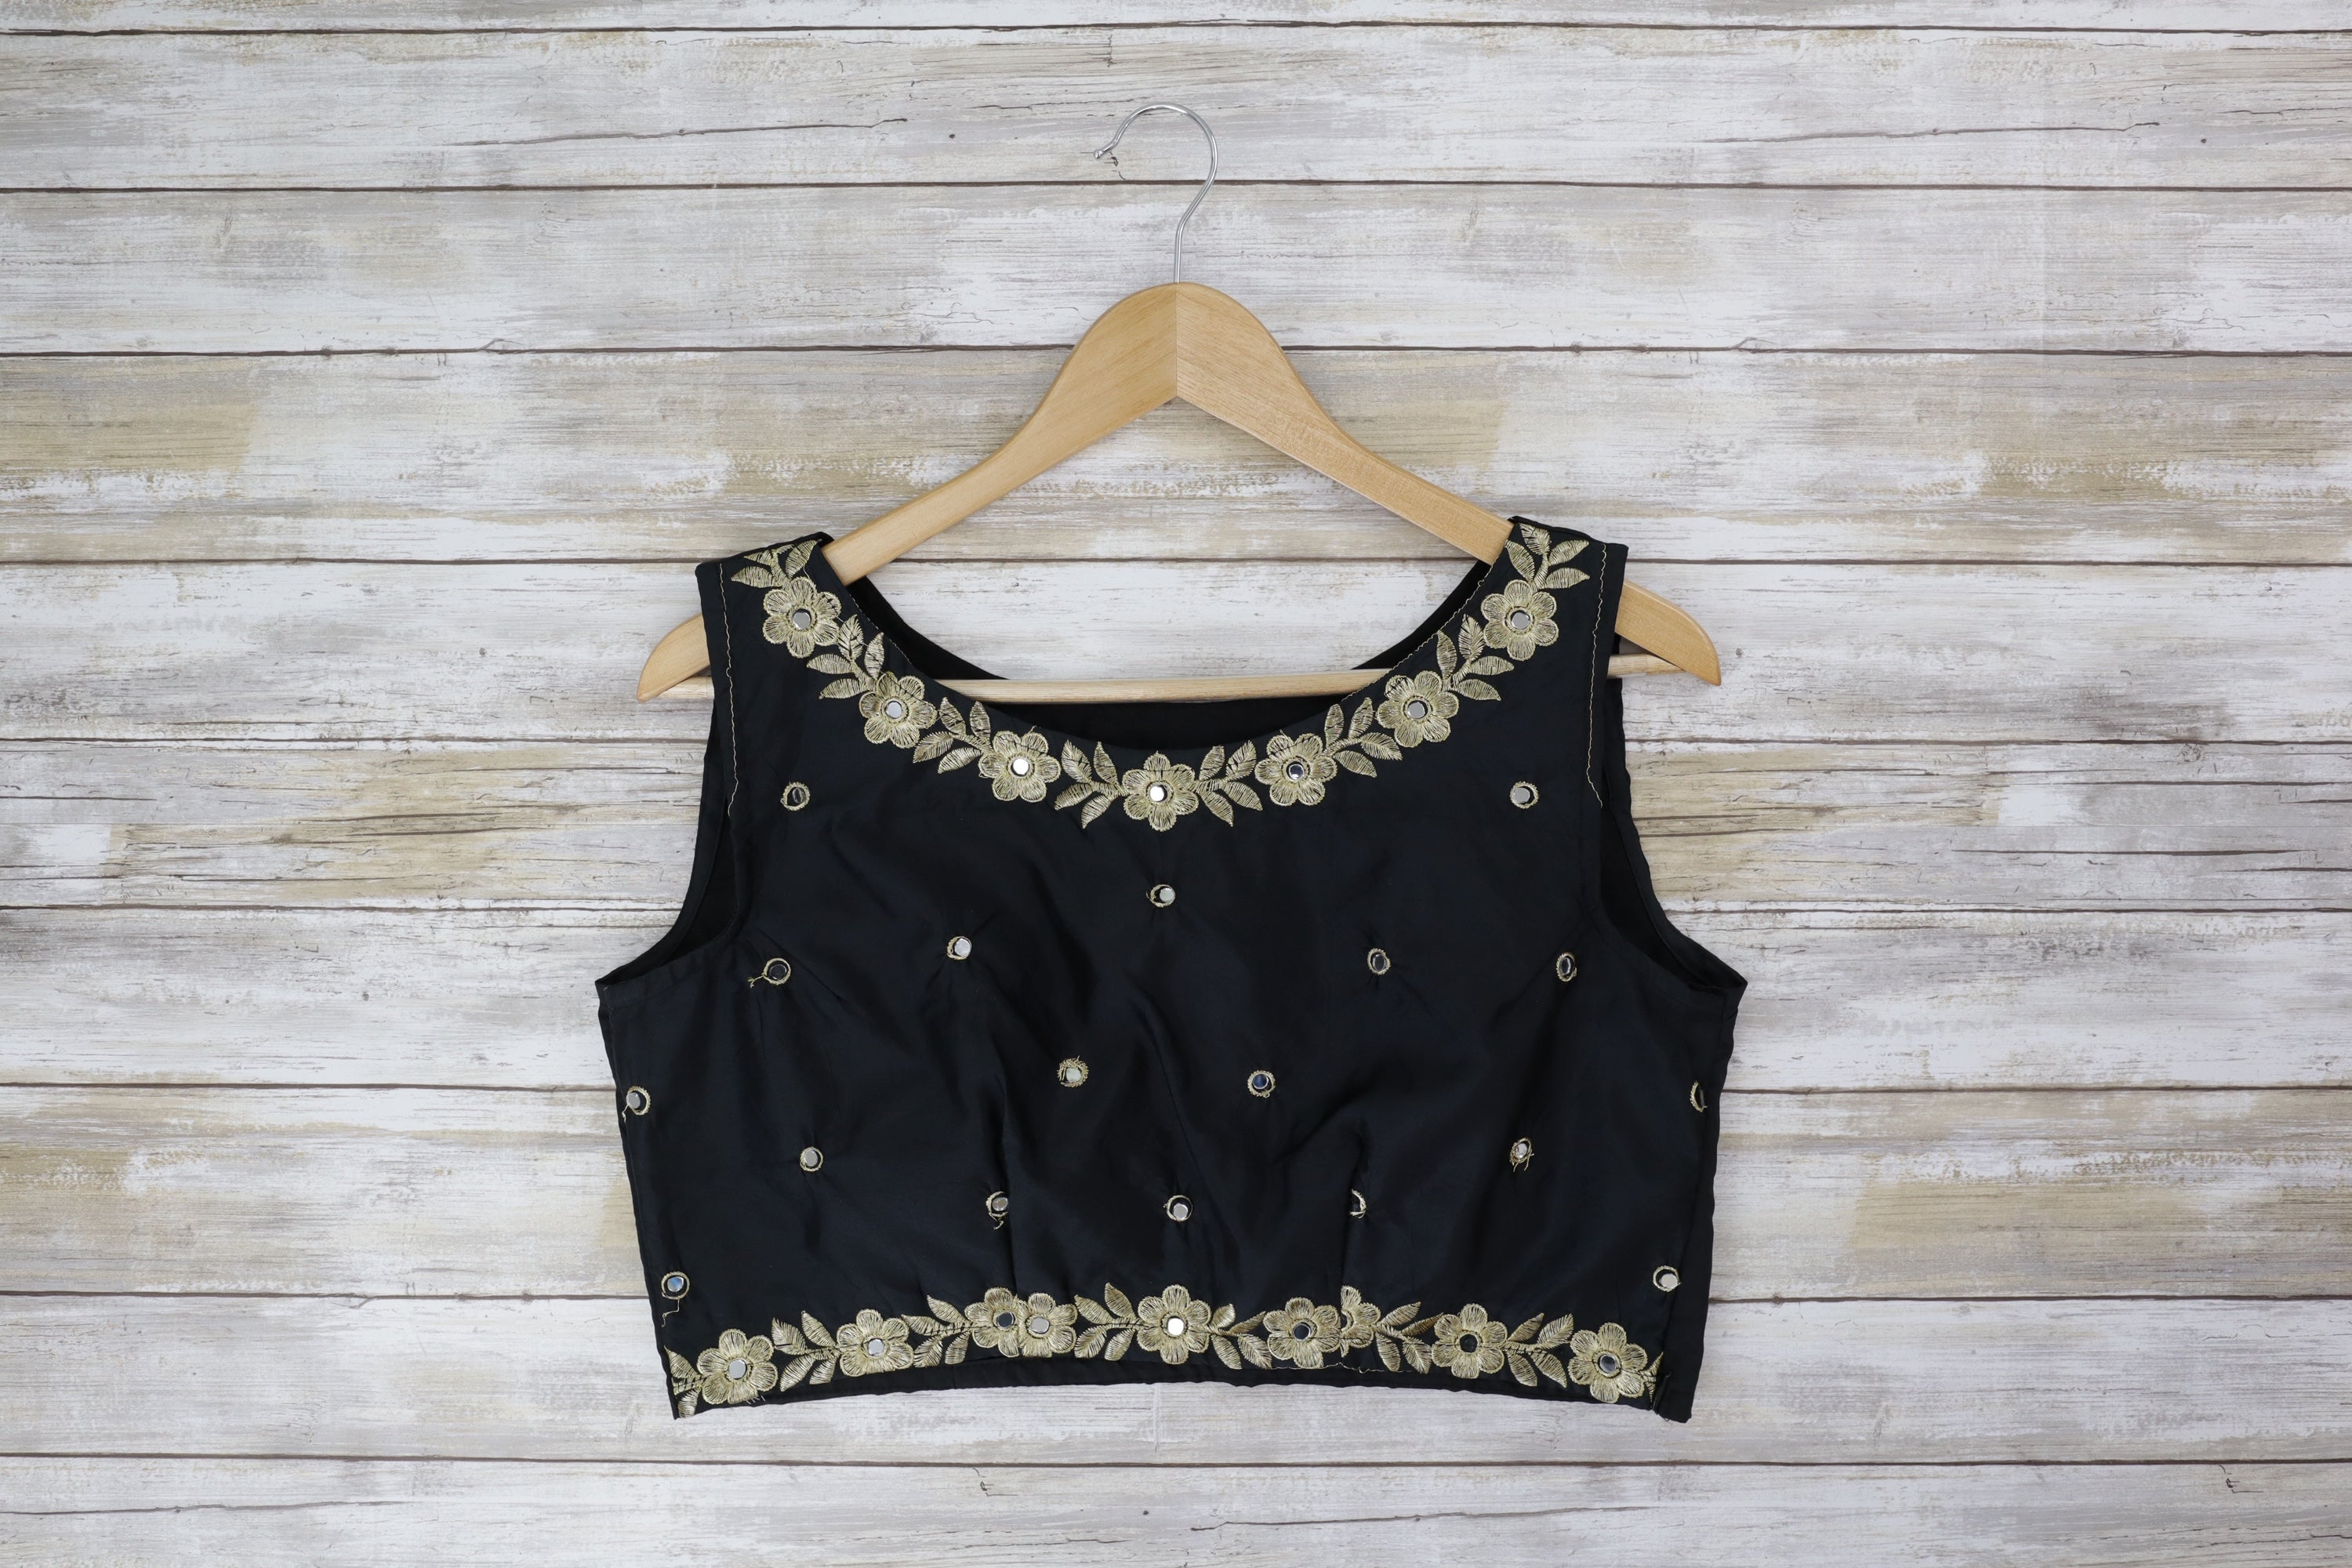 Black and gold sleeveless blouse with glimmering embroidery